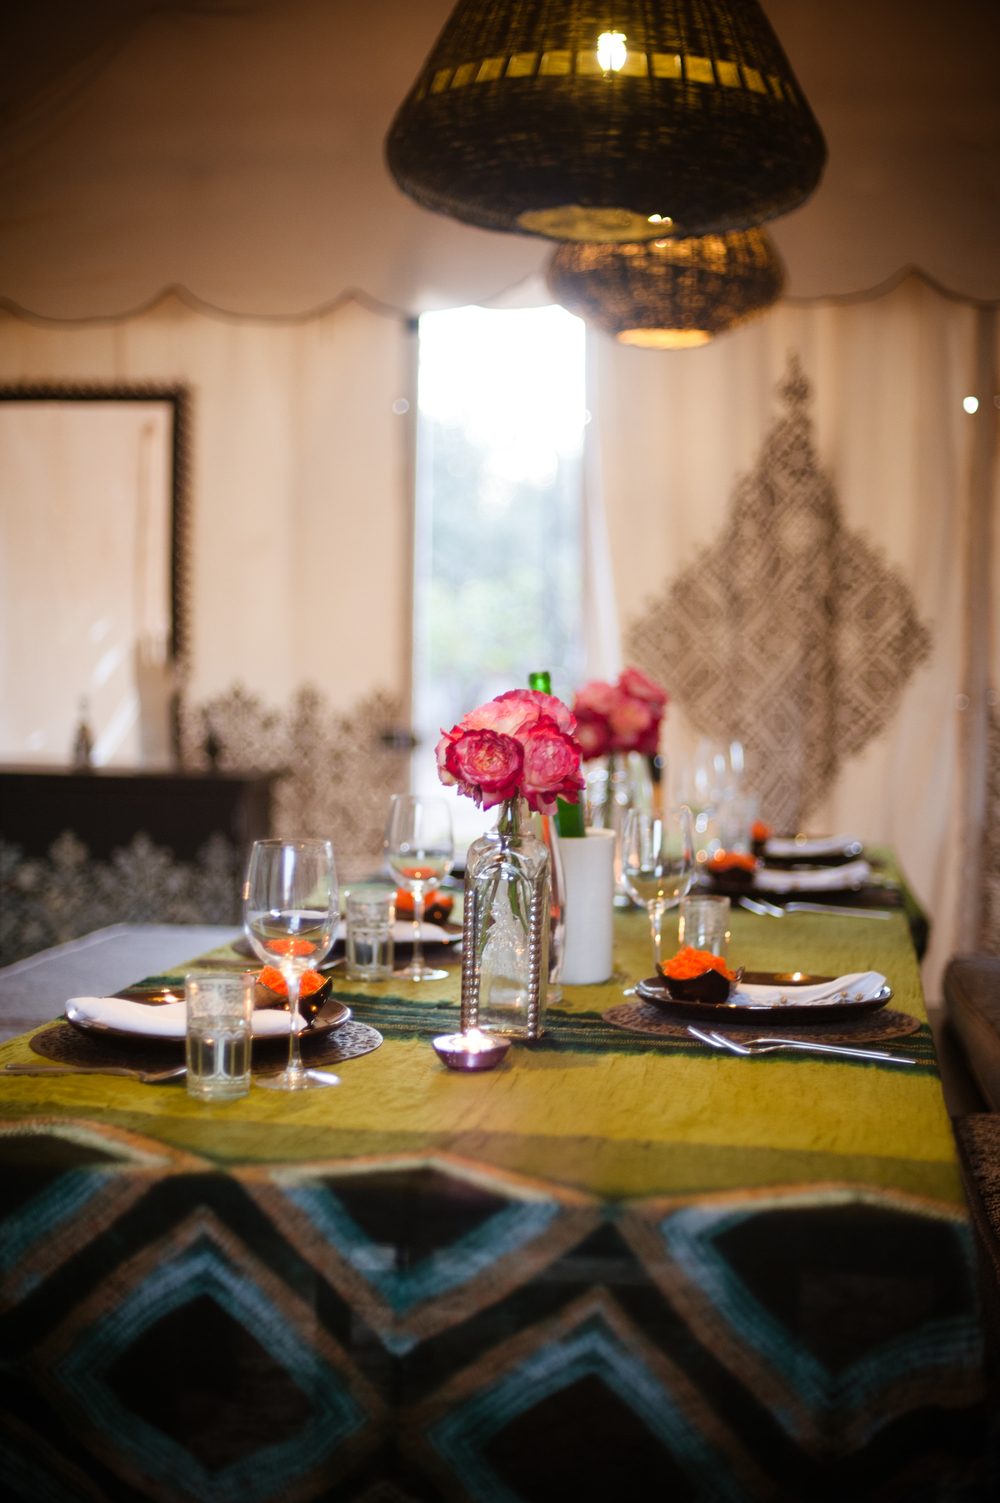 M.Montague - Tribal Chic for the Modern Nomad - Dining Tent at Peacock Pavilions, Marrakech, Morocco